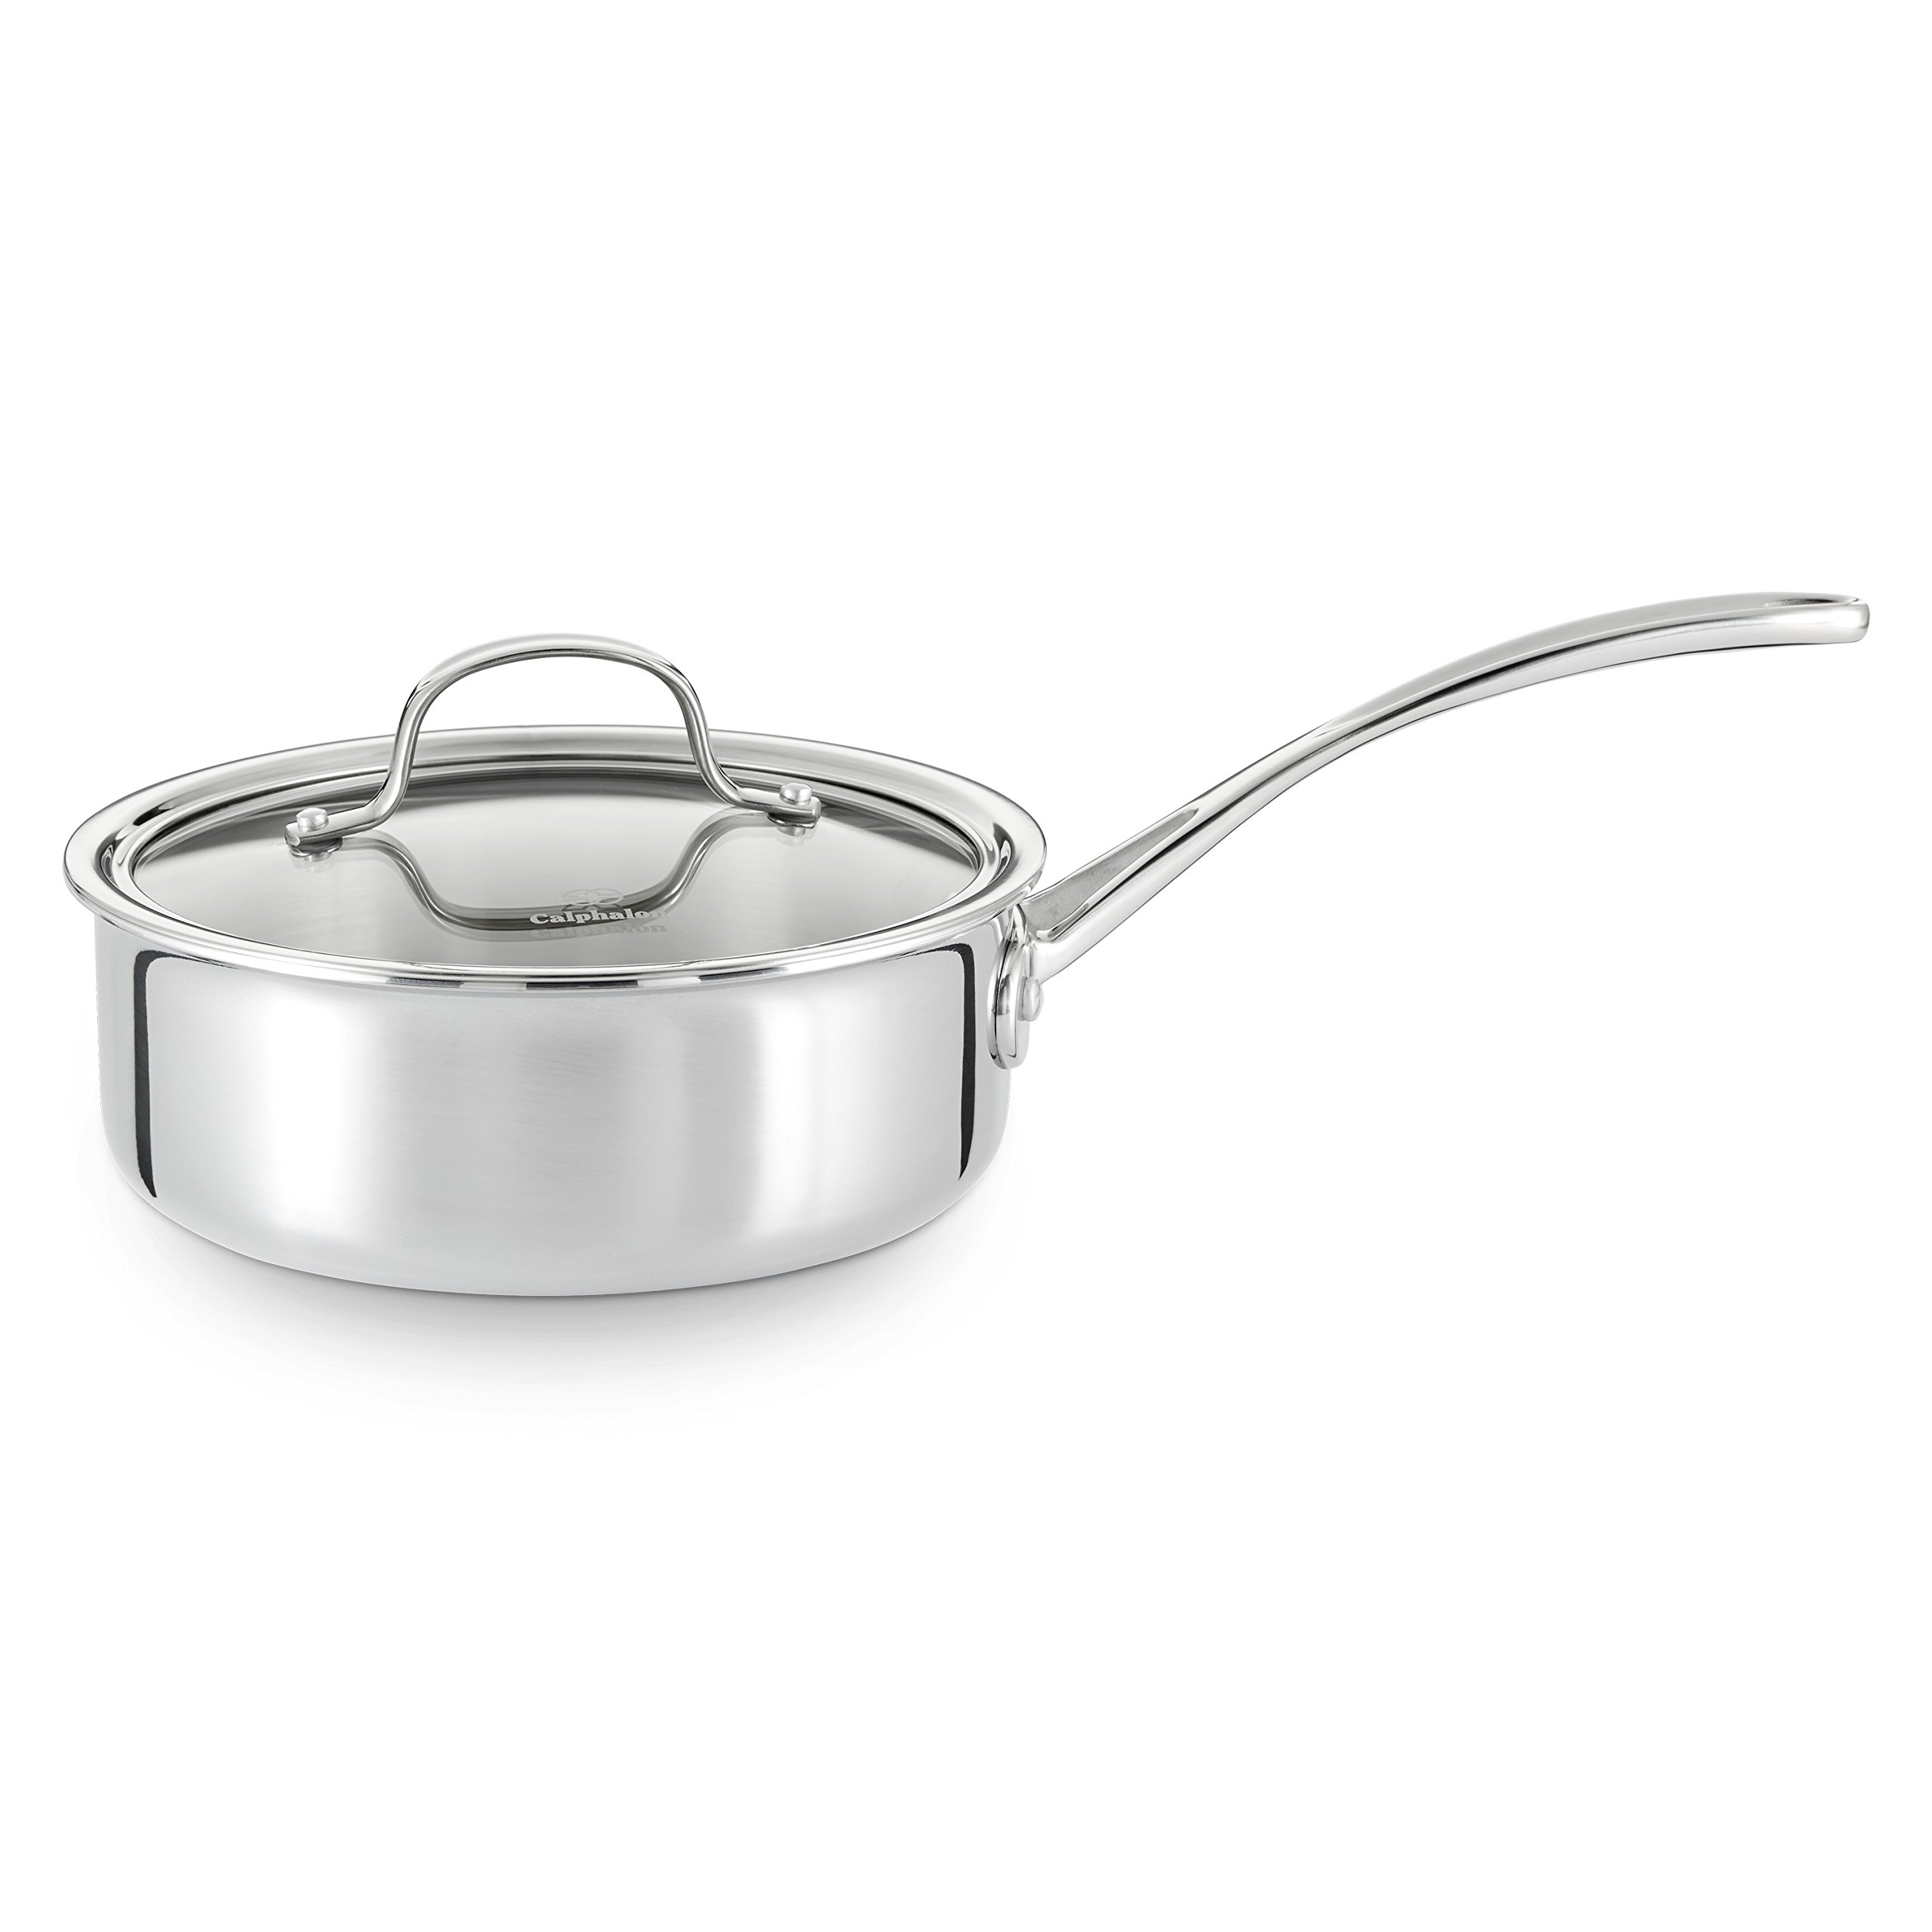 Calphalon Tri-Ply Stainless Steel Cookware, Shallow Sauce Pan, 2 1/2-quart by Calphalon